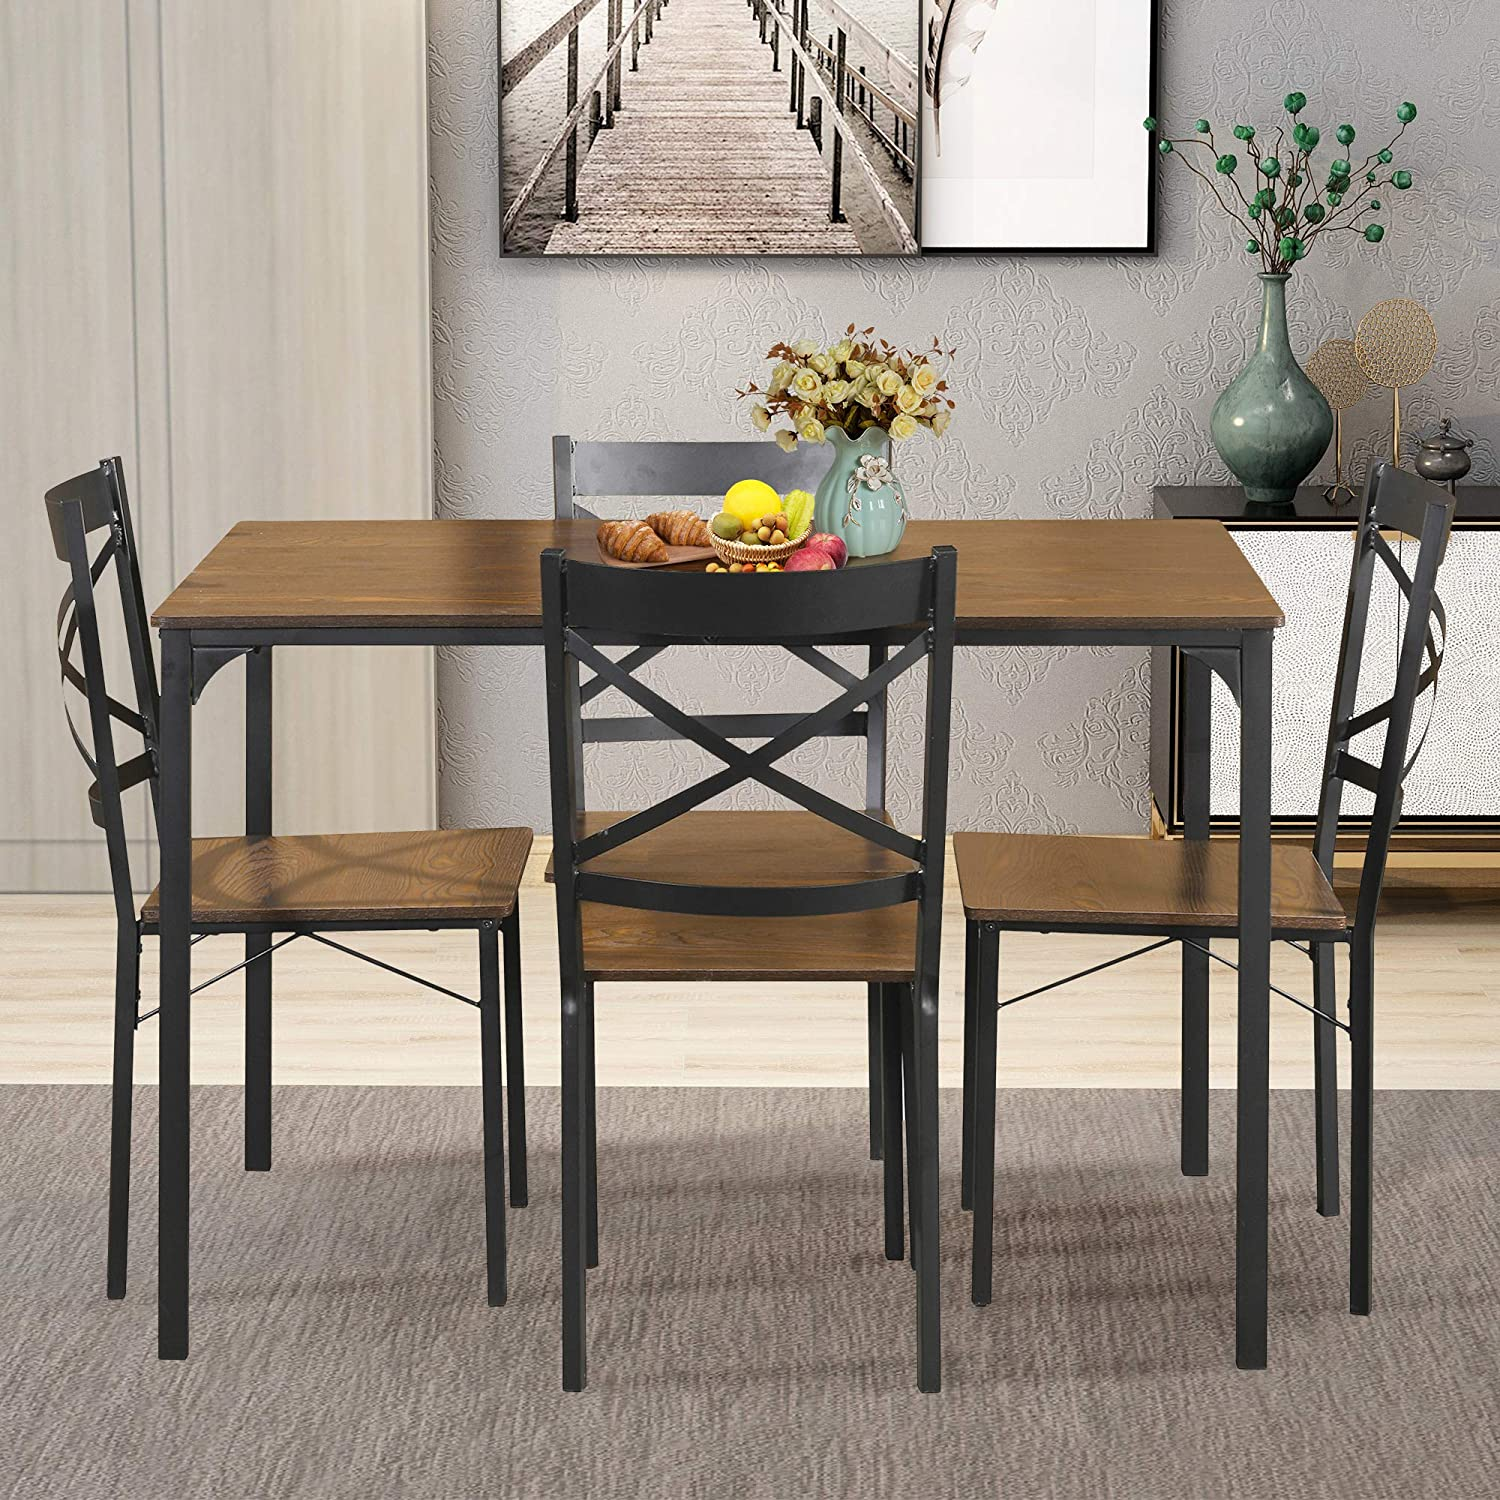 G-house 5-Piece Dining Set Industrial Style Wooden Kitchen Table and Chairs